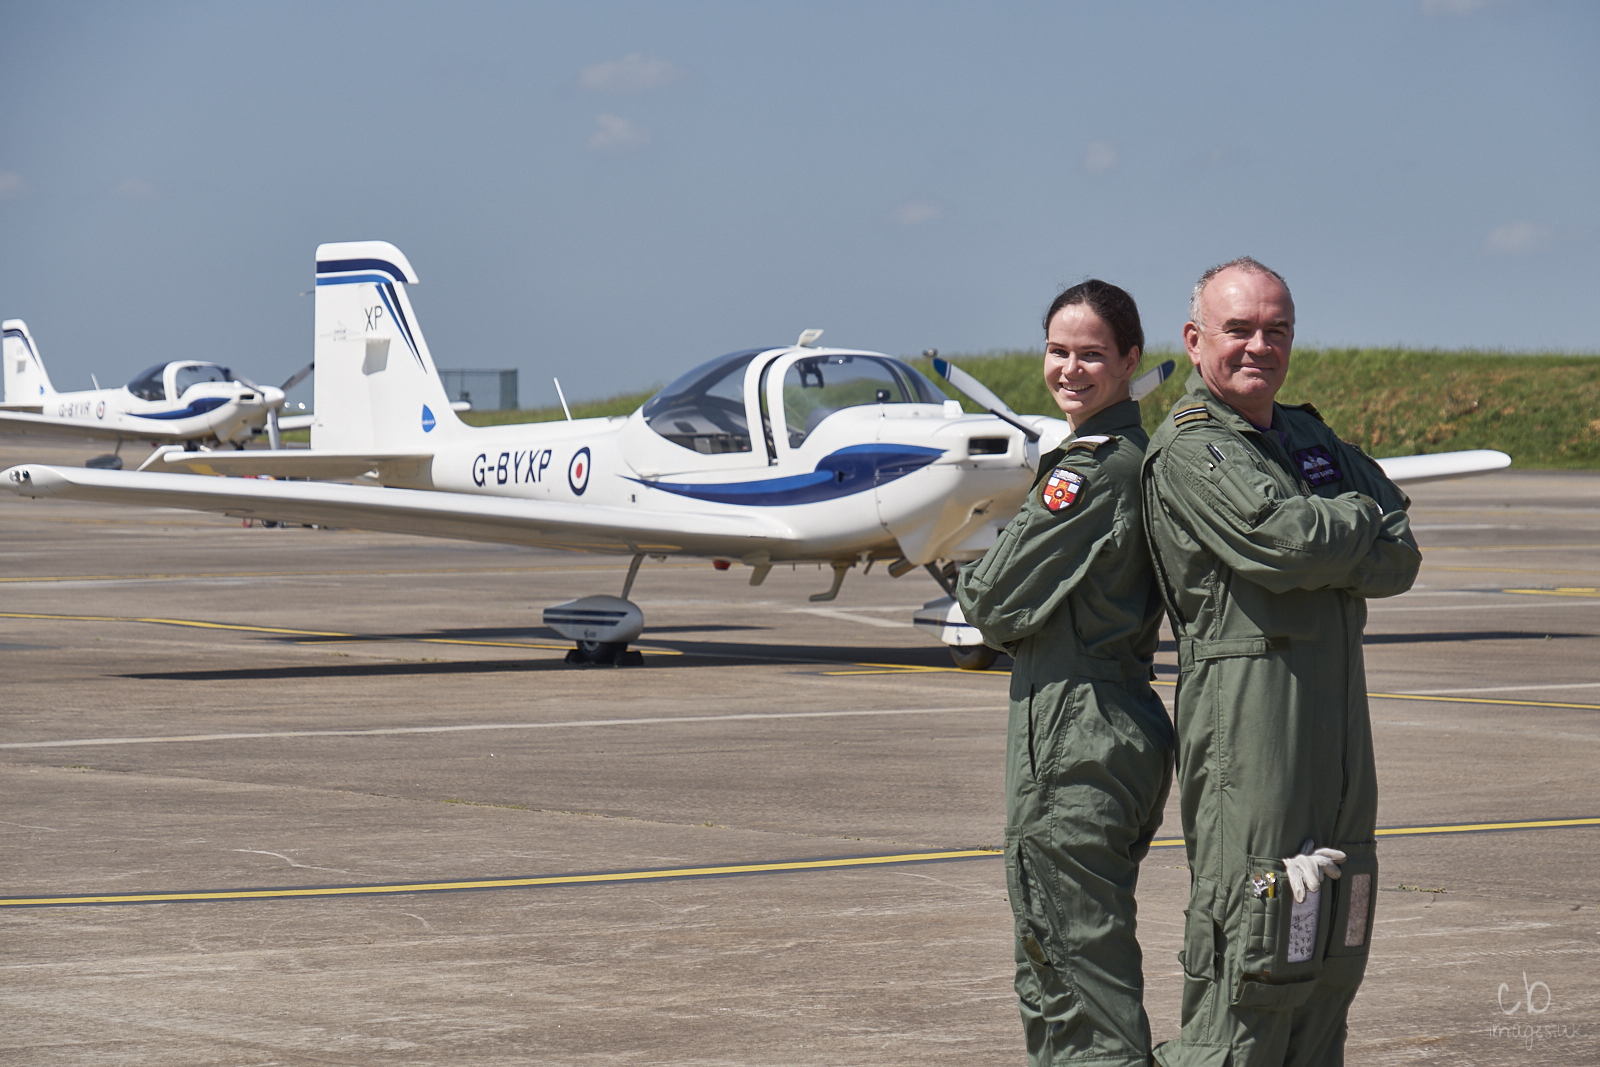 Two pilots stand back-to-back in front of a white aircraft